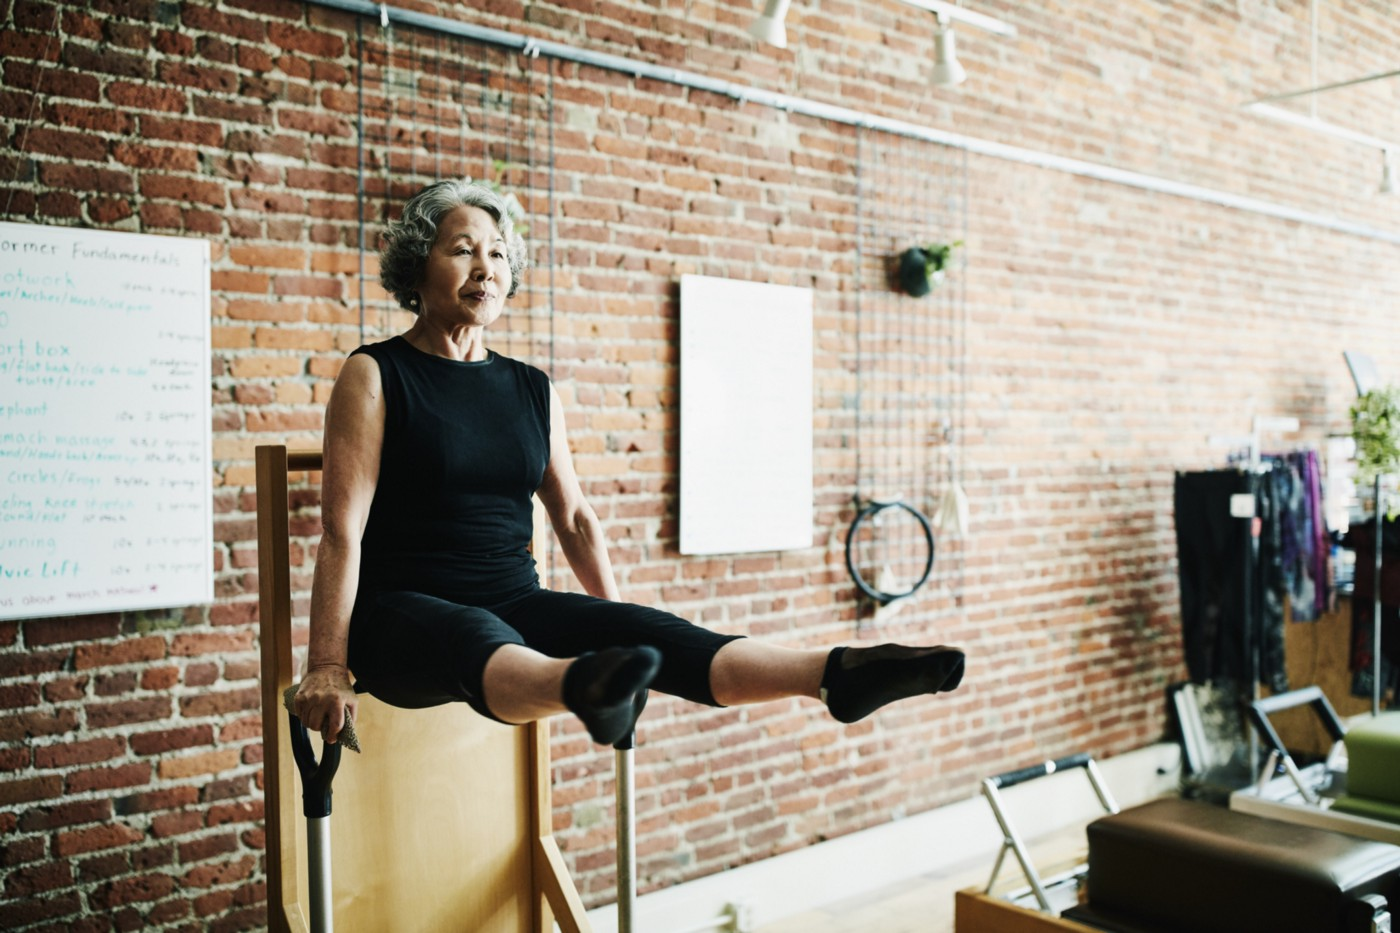 Mature woman doing arm press on high-low pilates chair in fitness studio.